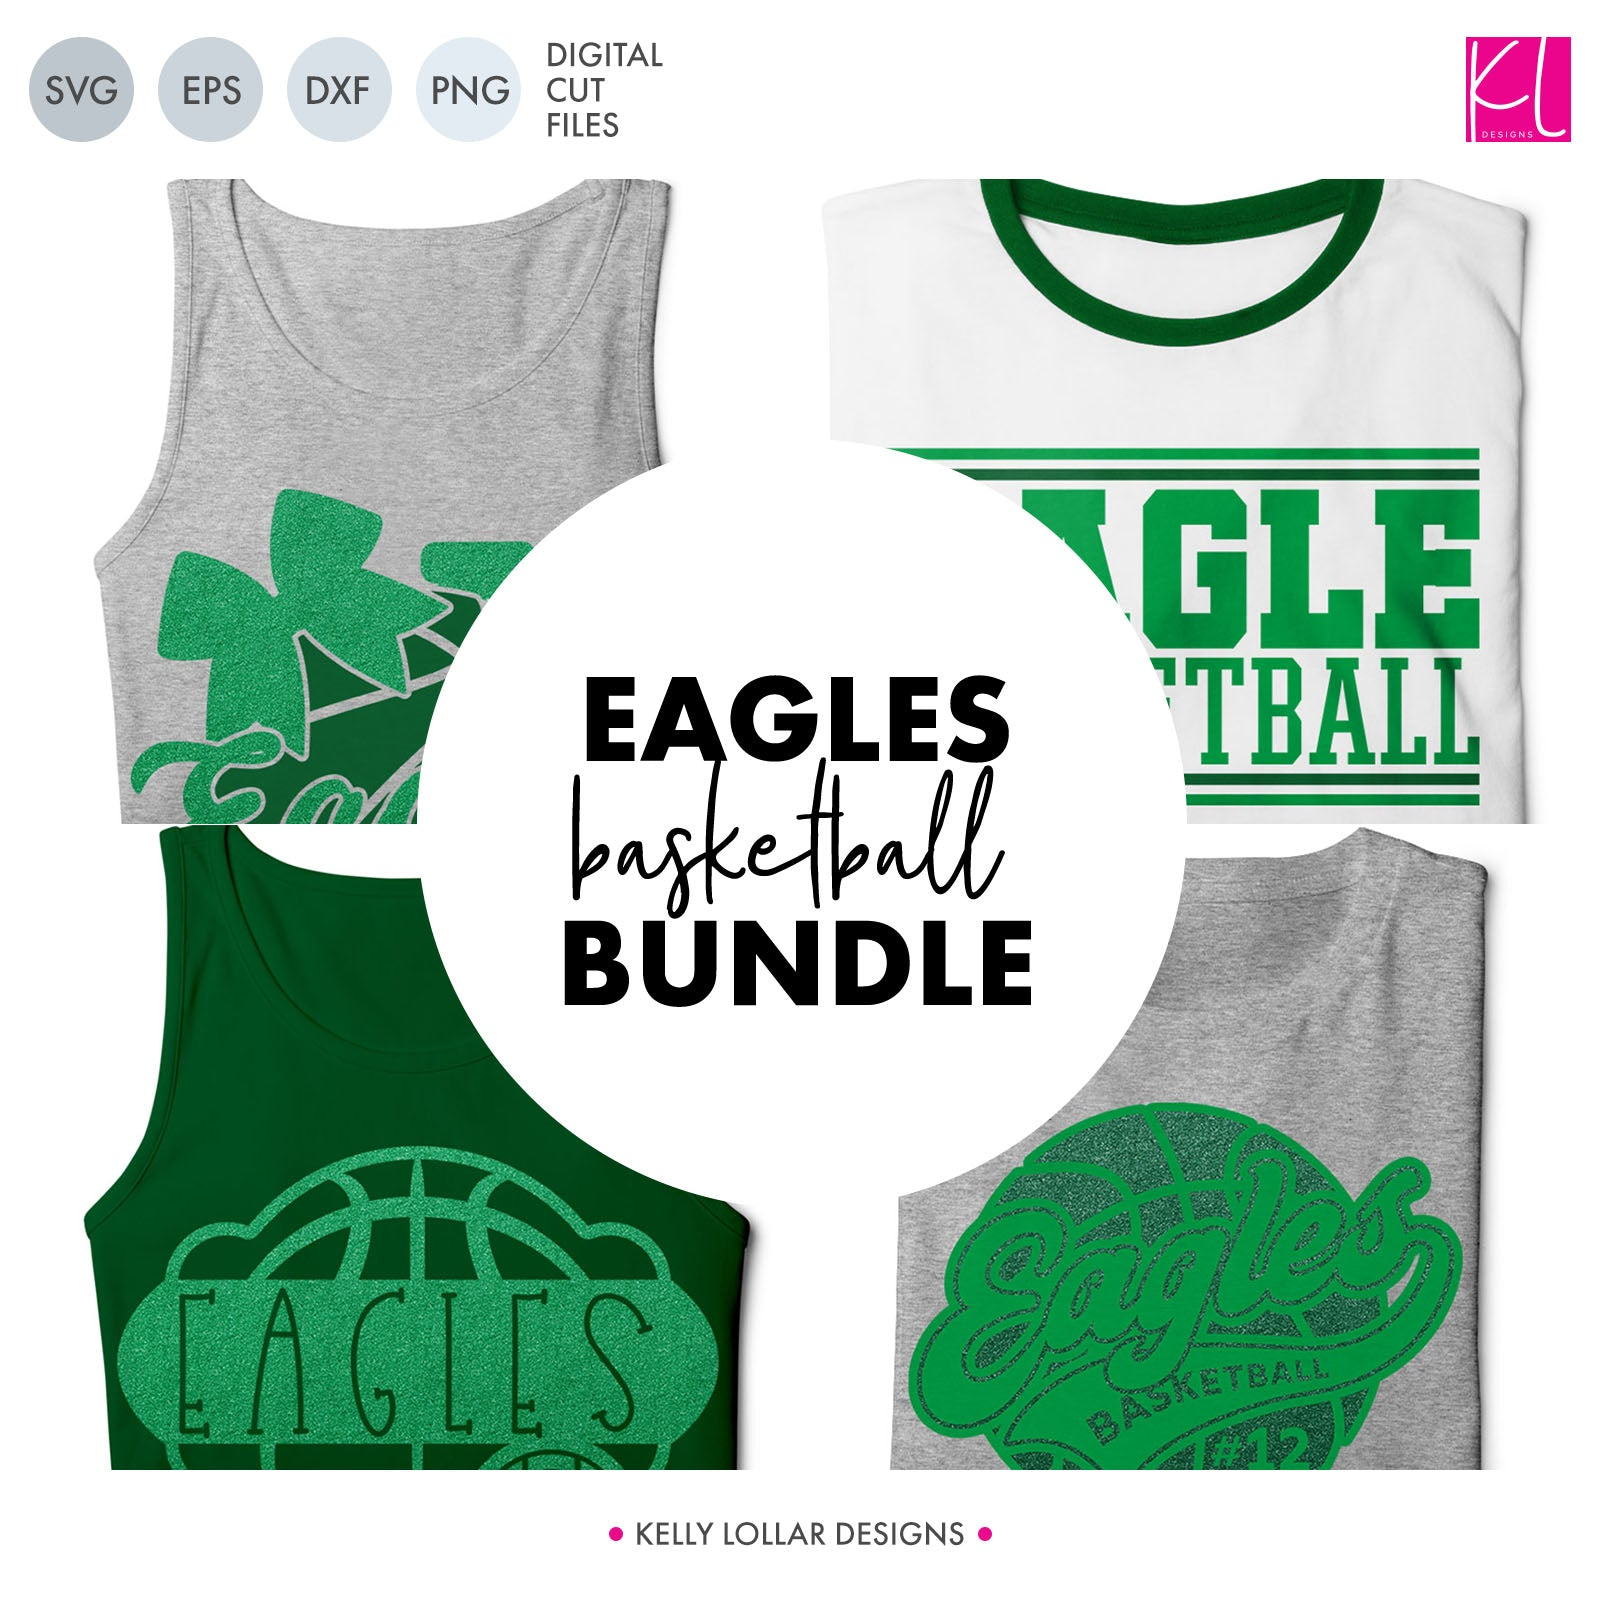 Eagles Basketball Bundle | SVG DXF EPS PNG Cut Files It's basketball season, so you Eagle Basketball crafter know what that means ... new spirit shirts! This fourteen-piece bundle includes a little something for everyone - from girly and cute